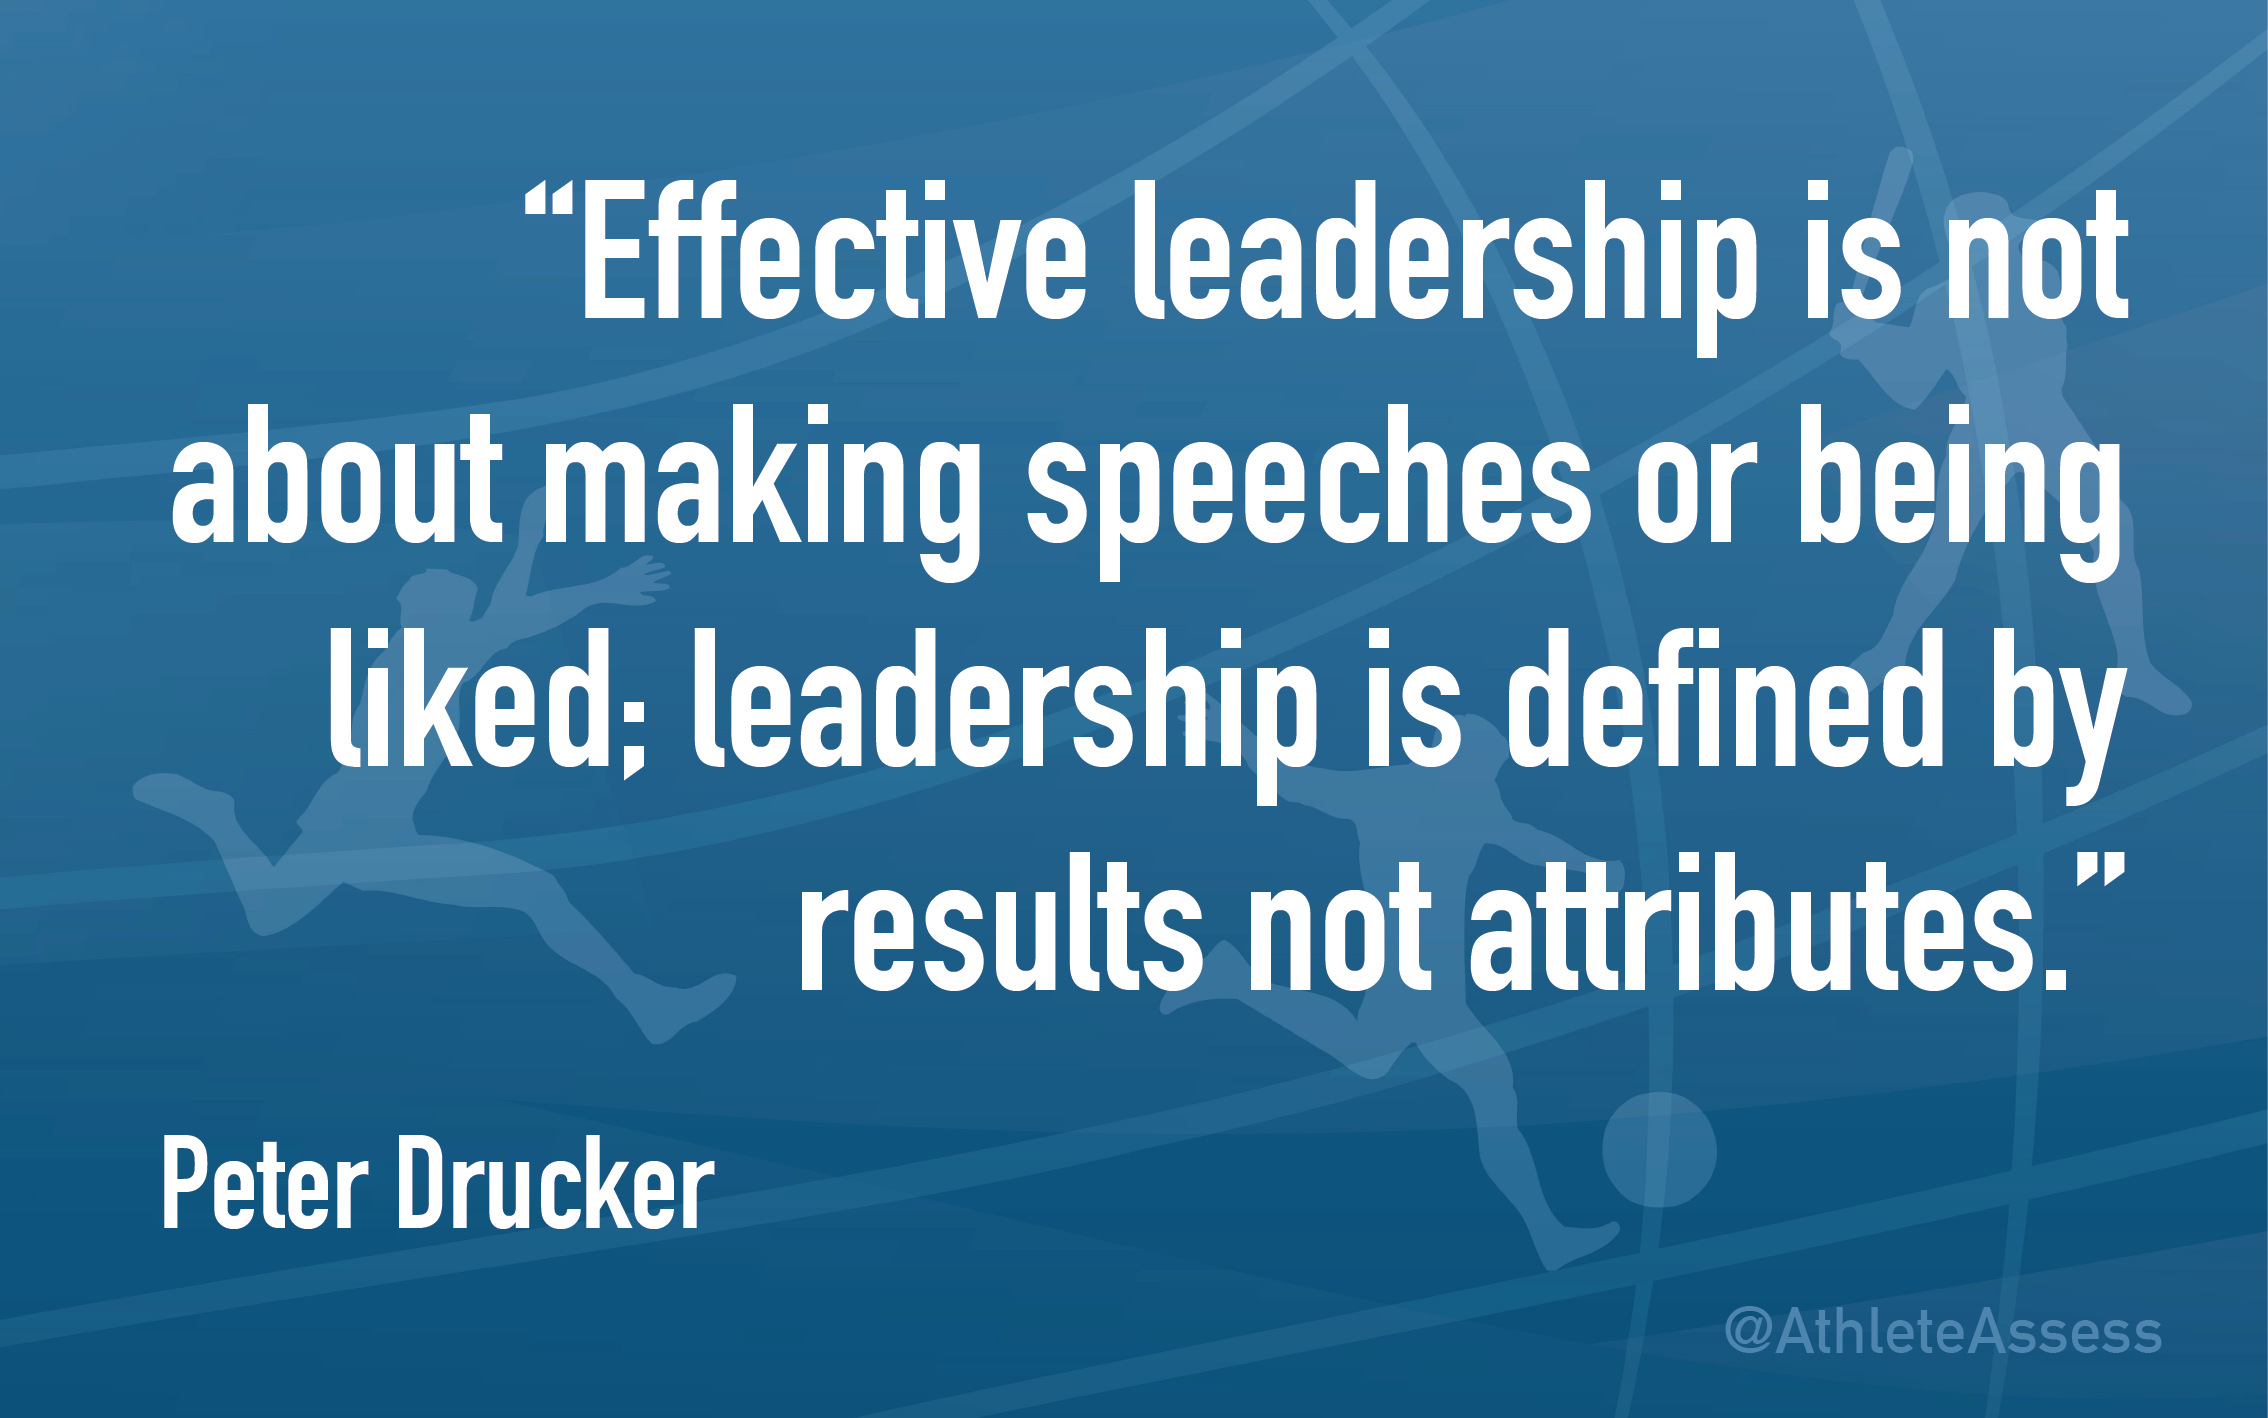 Leadership is defined by results not attributes